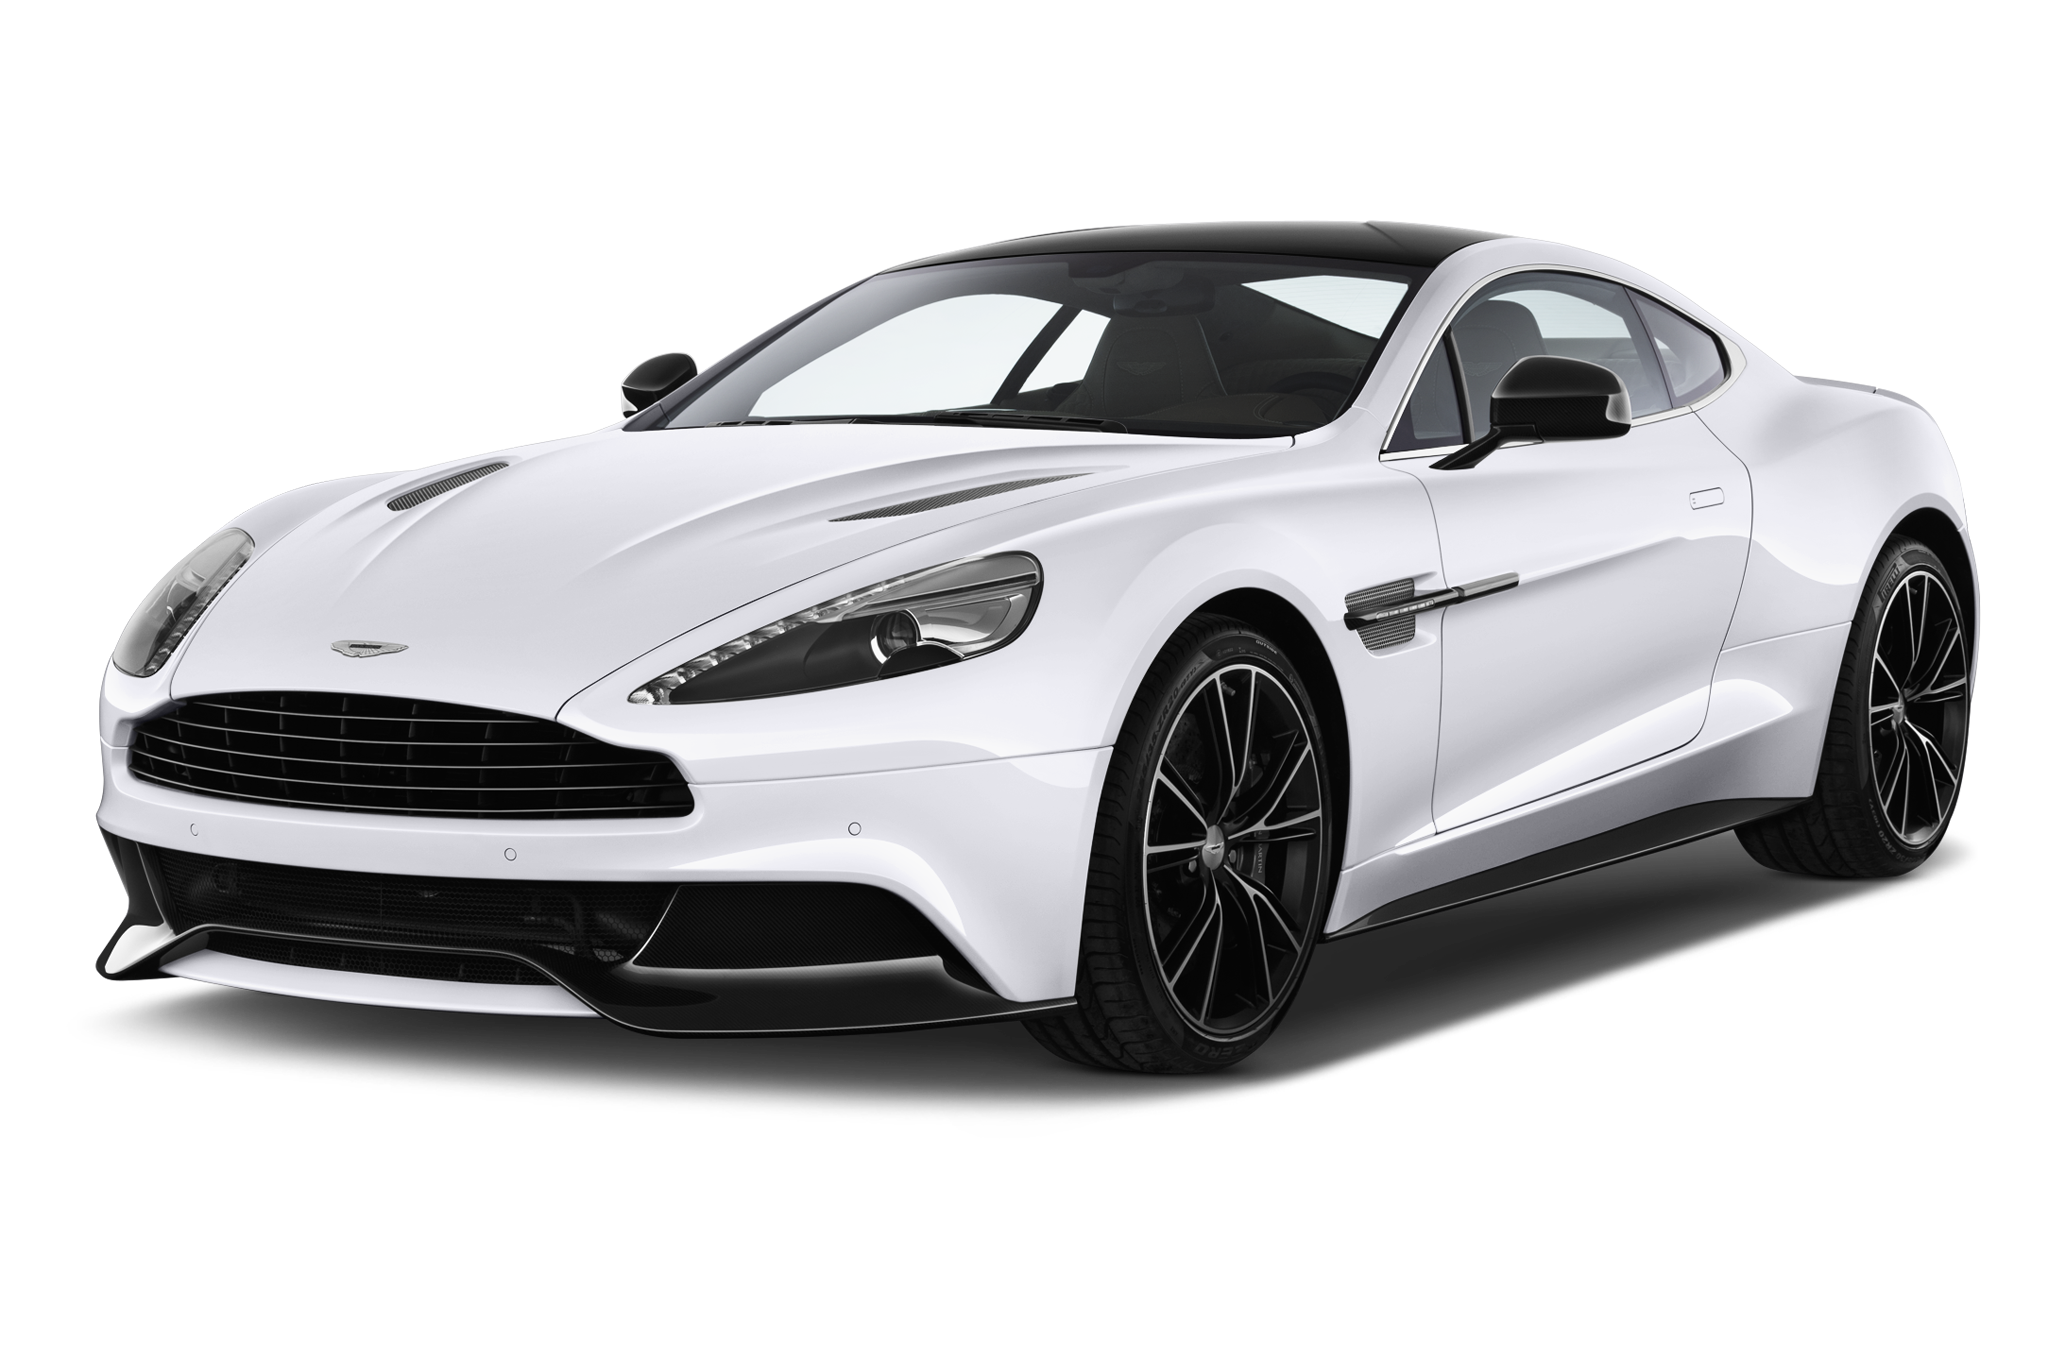 Free Aston Martin PNG Transparent Images, Download Free Clip Art.